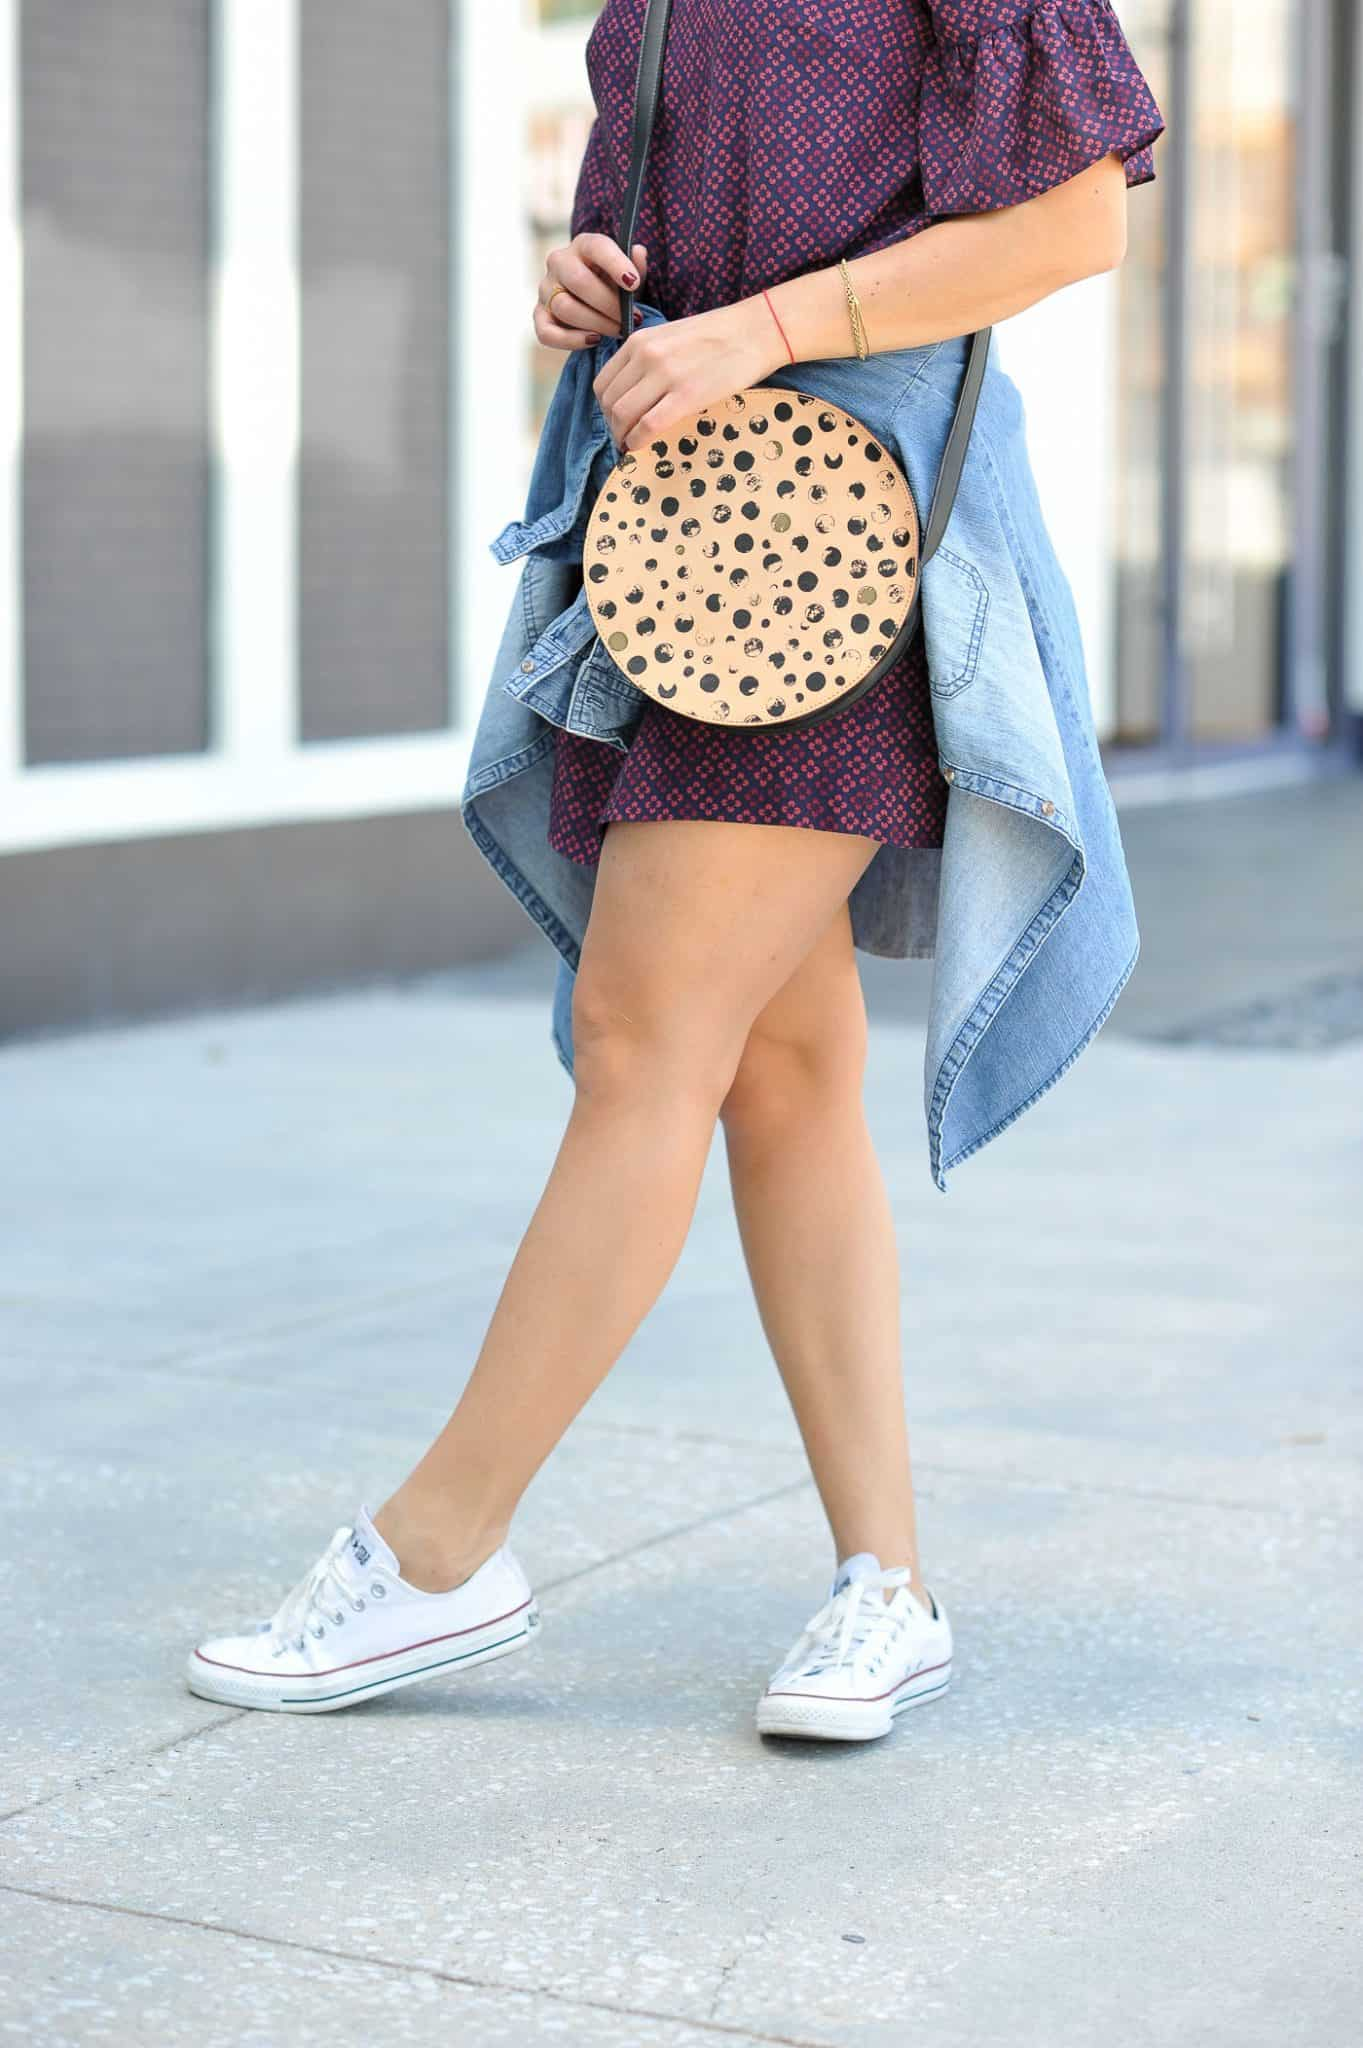 Ways to wear Converse sneakers, circle purse - My Style Vita @mystylevita